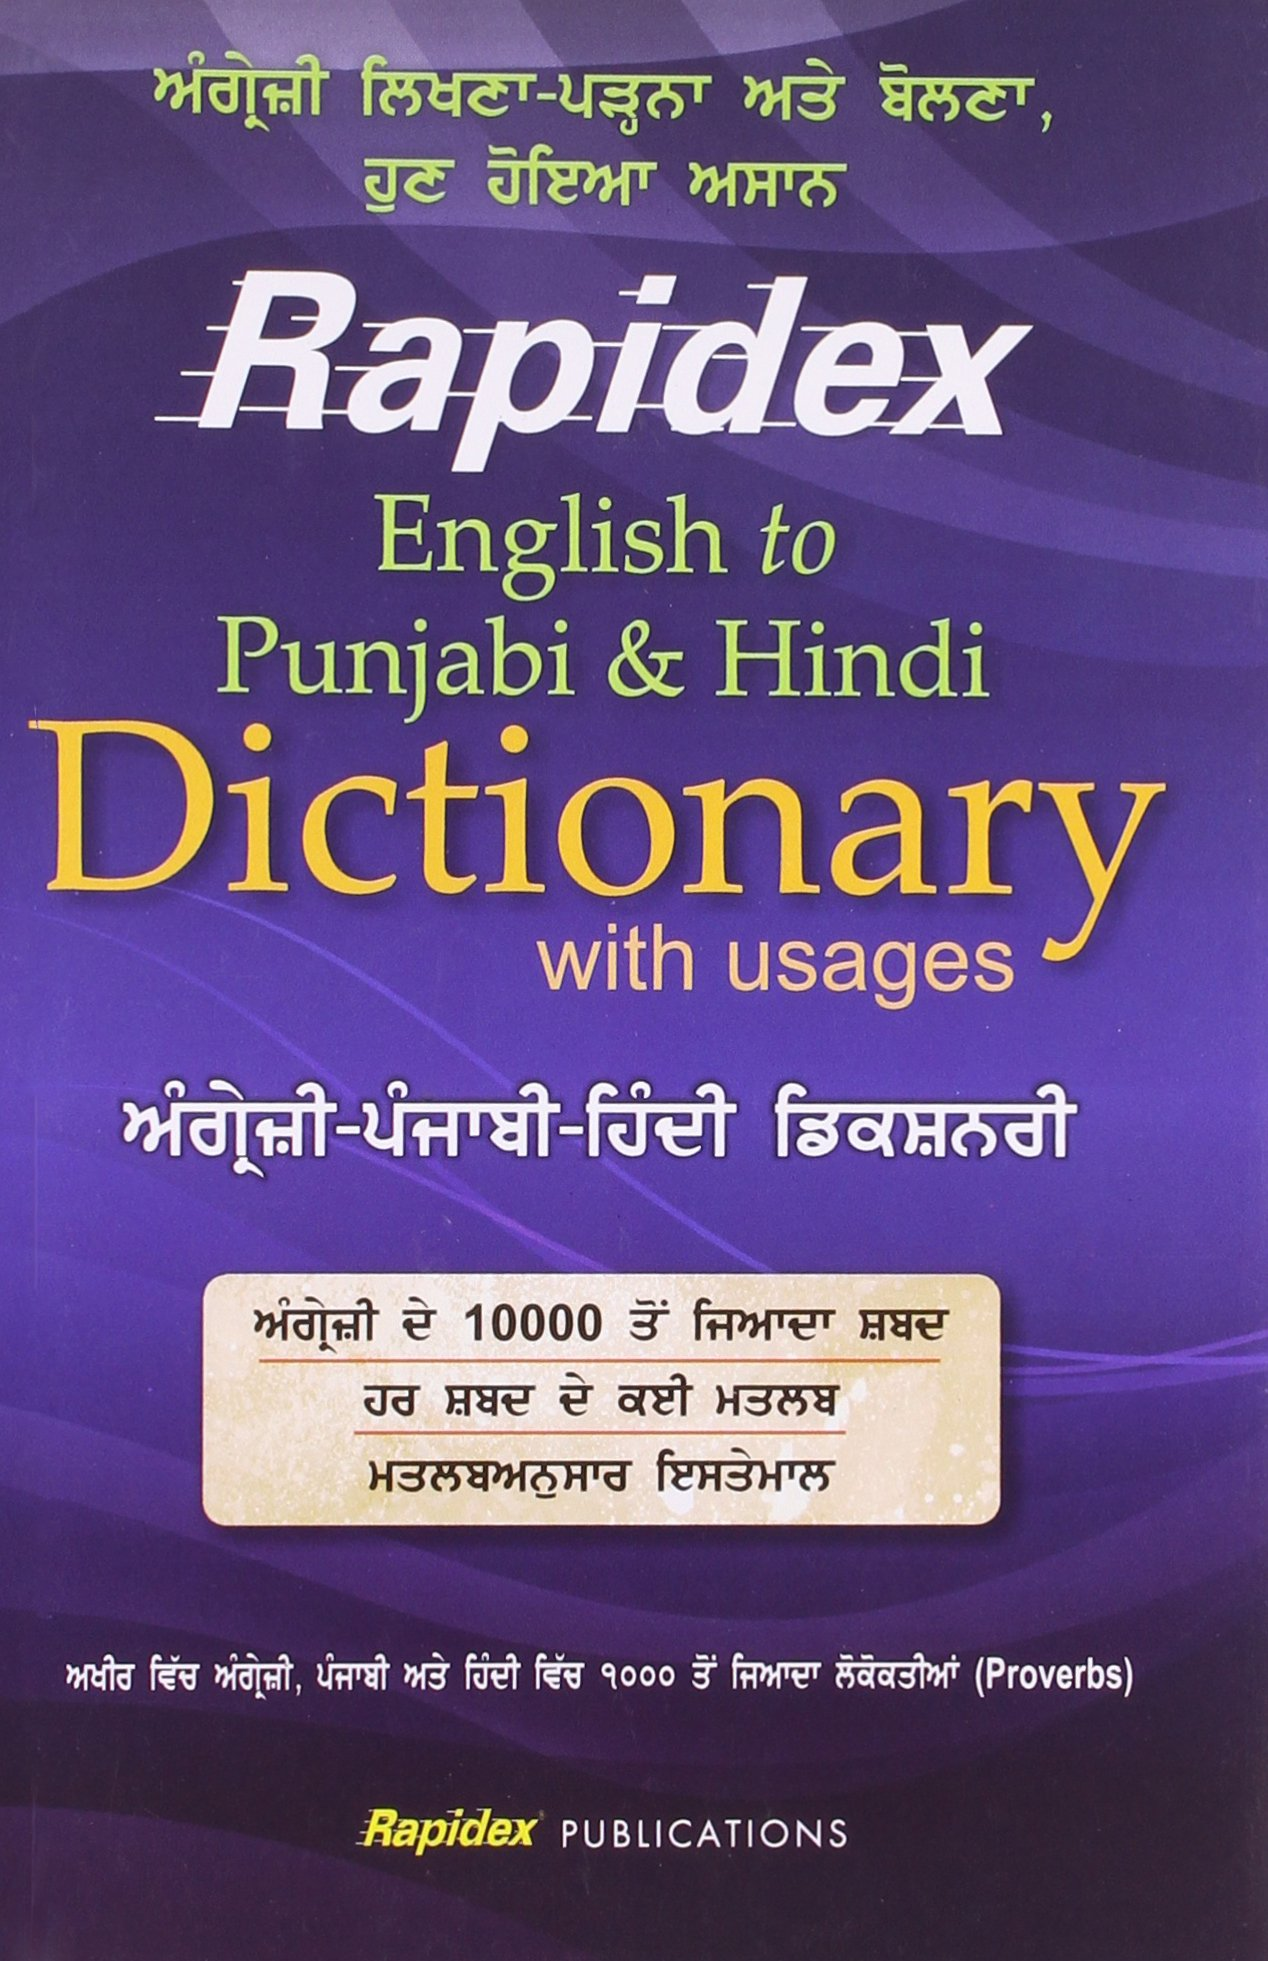 Buy rapidex english punjabi hindi dictionary book online at low prices in india rapidex english punjabi hindi dictionary reviews ratings amazon in